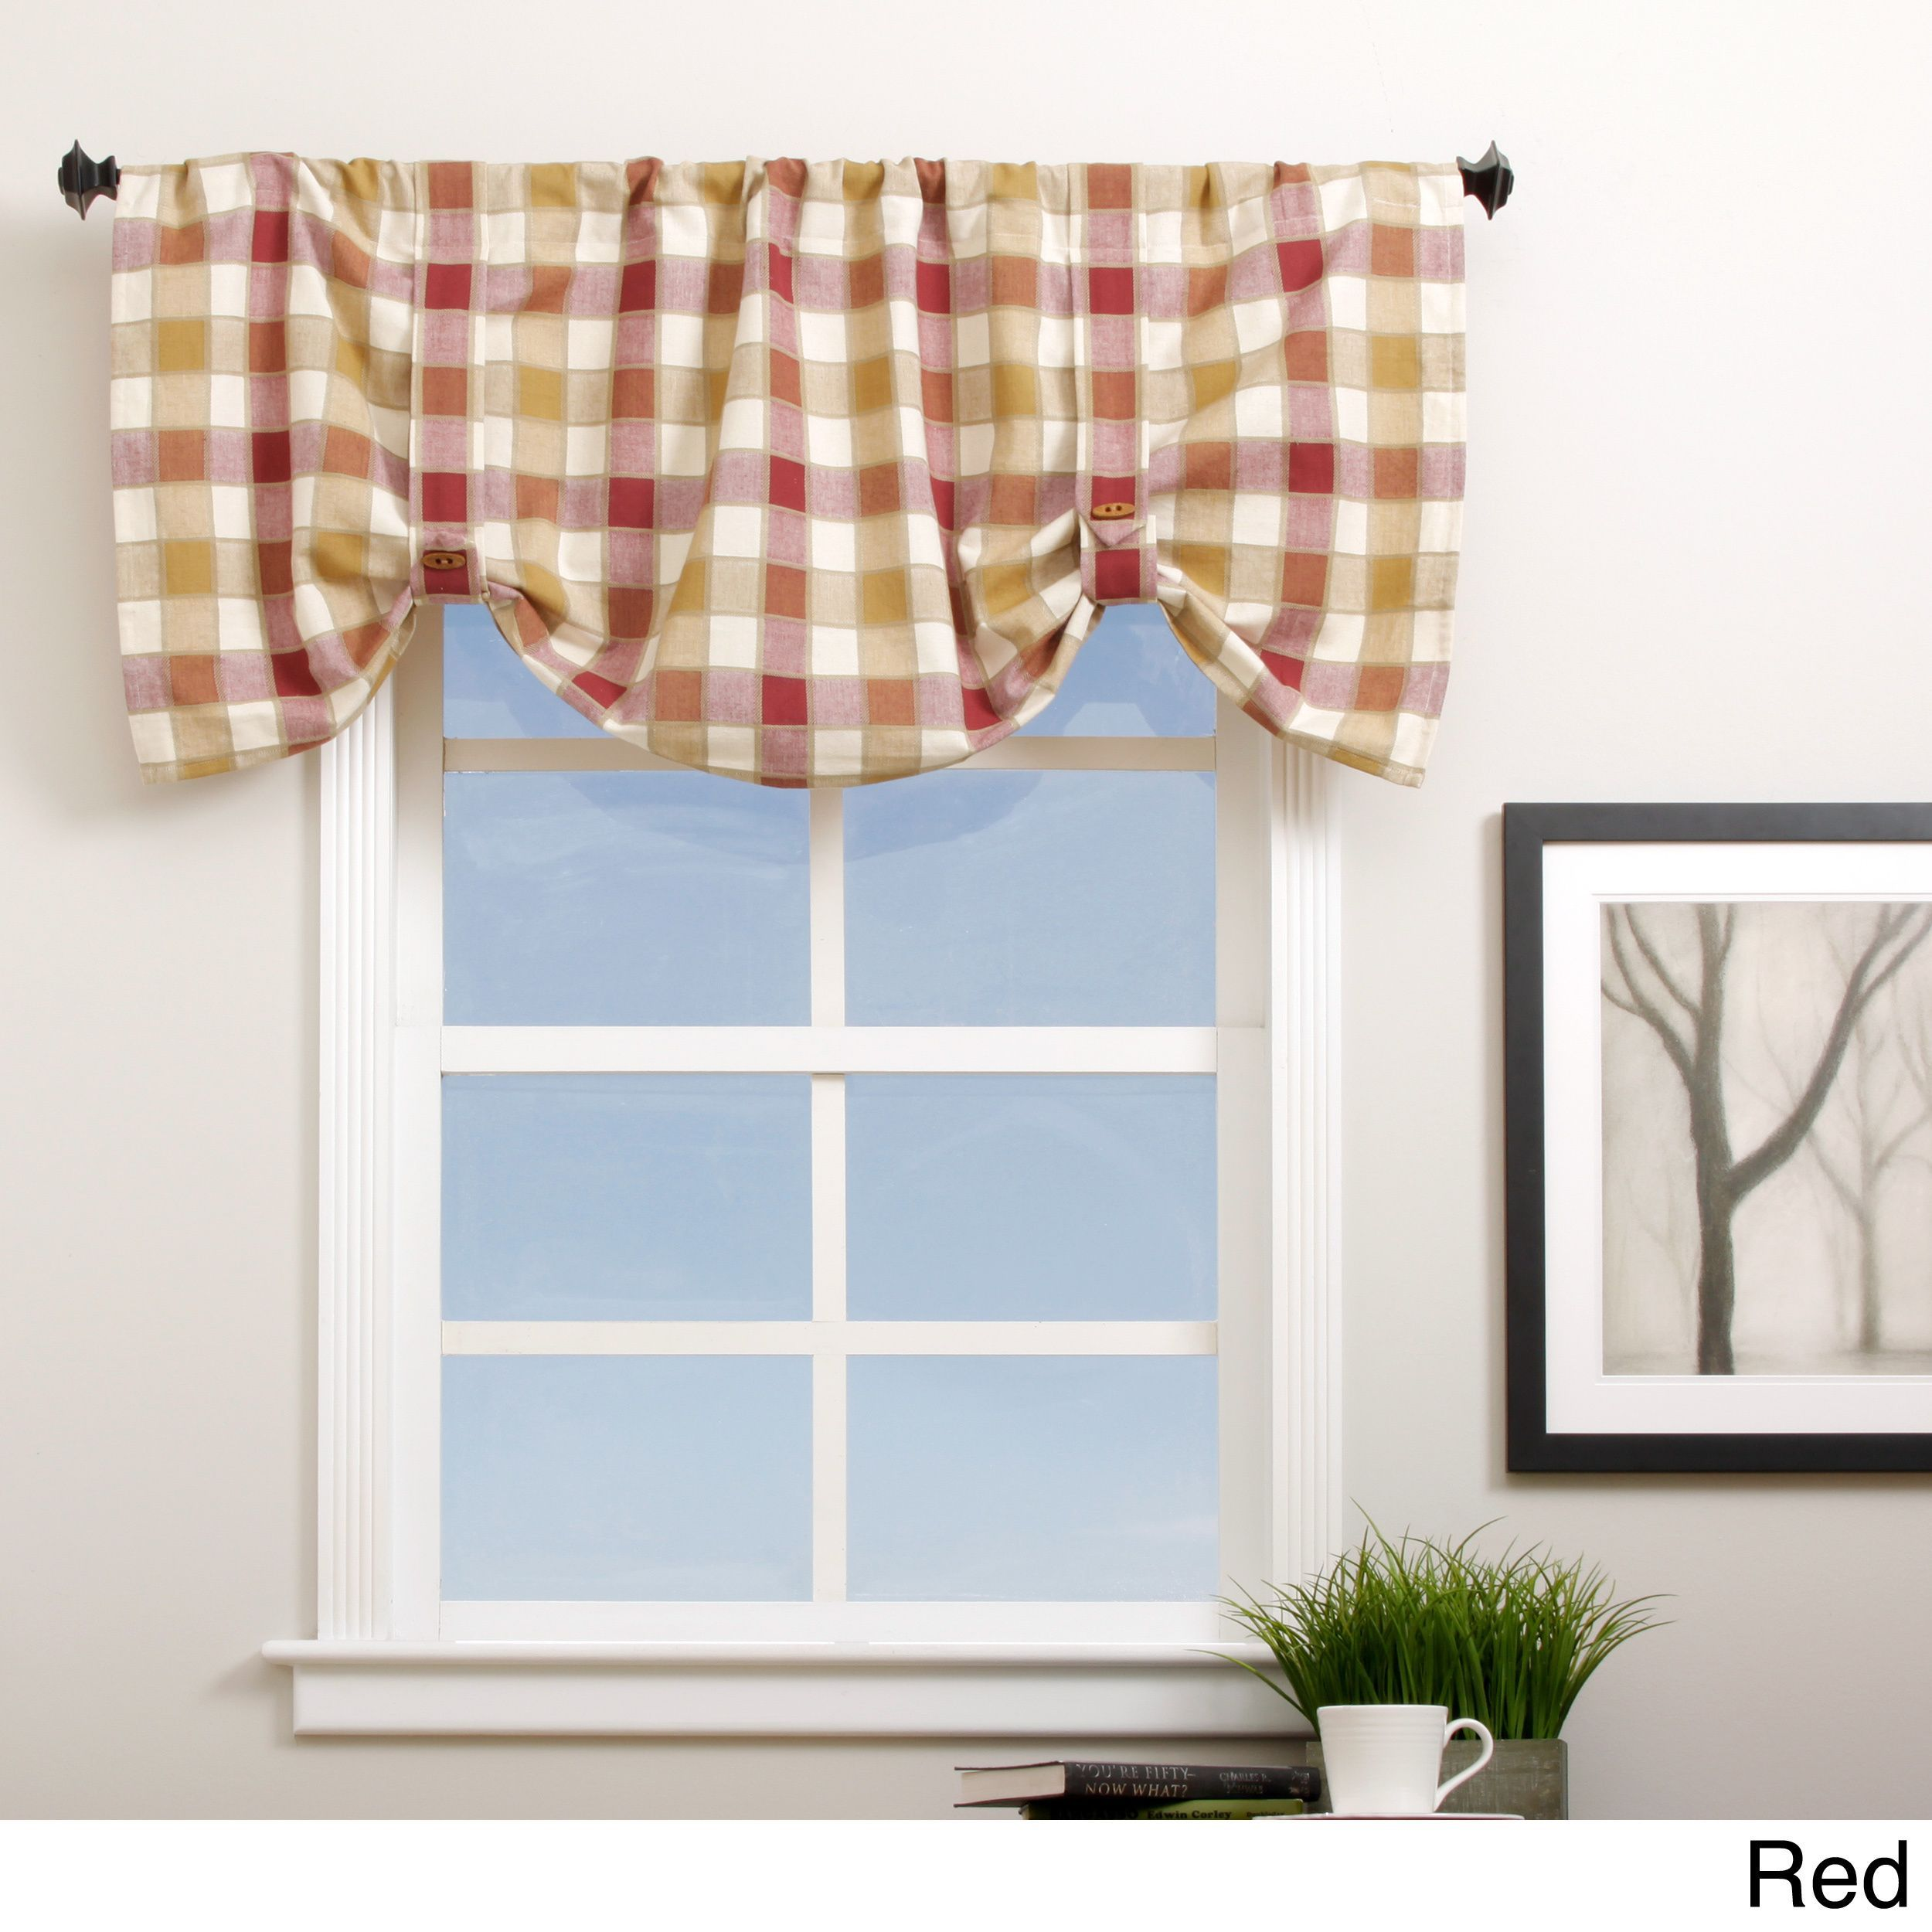 Add an eyecatching detail to your window with this cute plaid